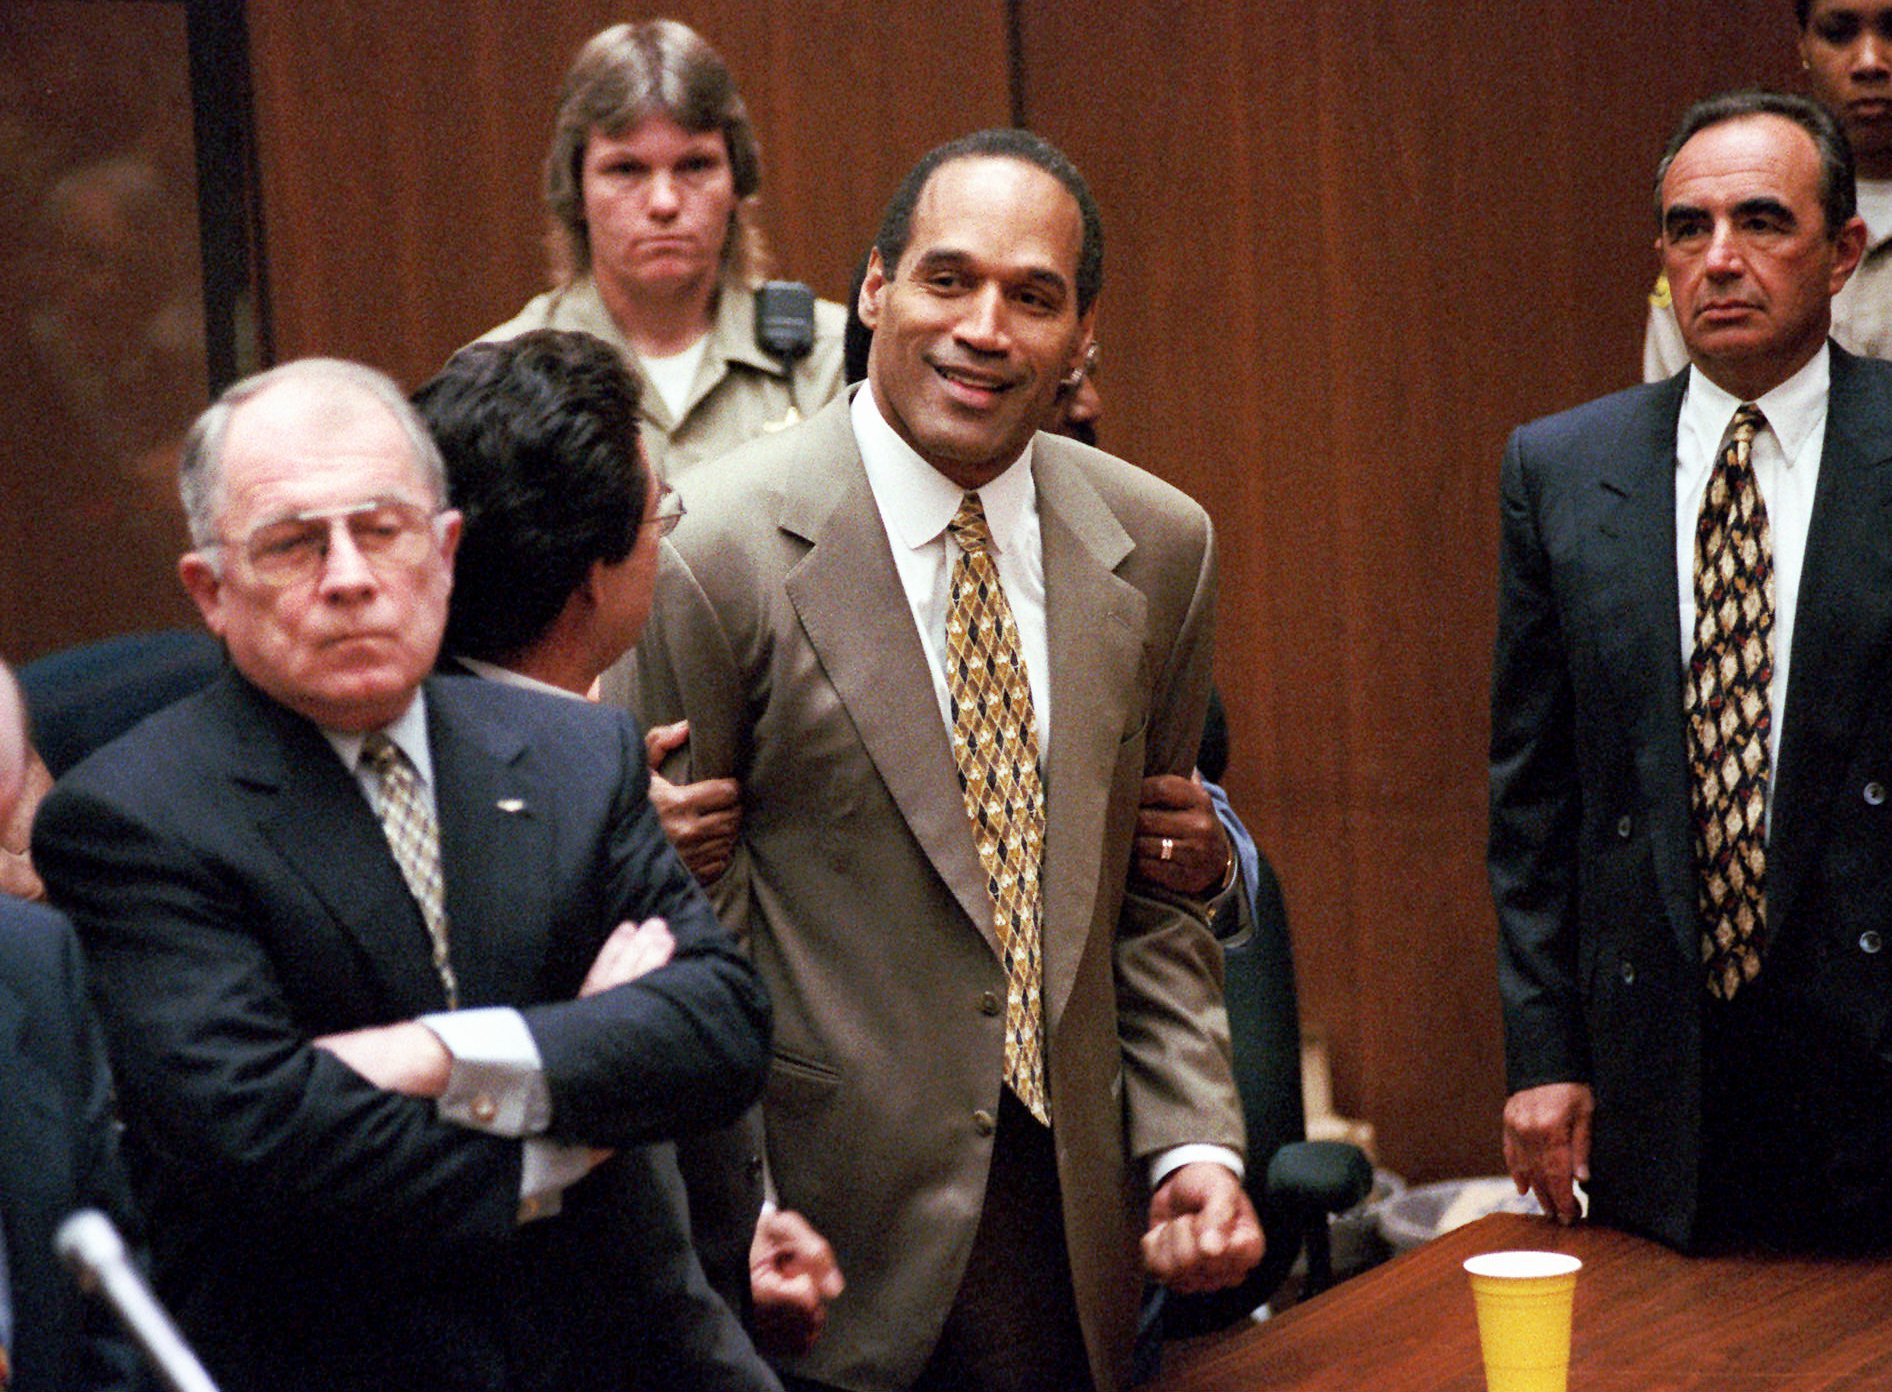 O.J.: Made in America' covers so much we didn't know | WTOP